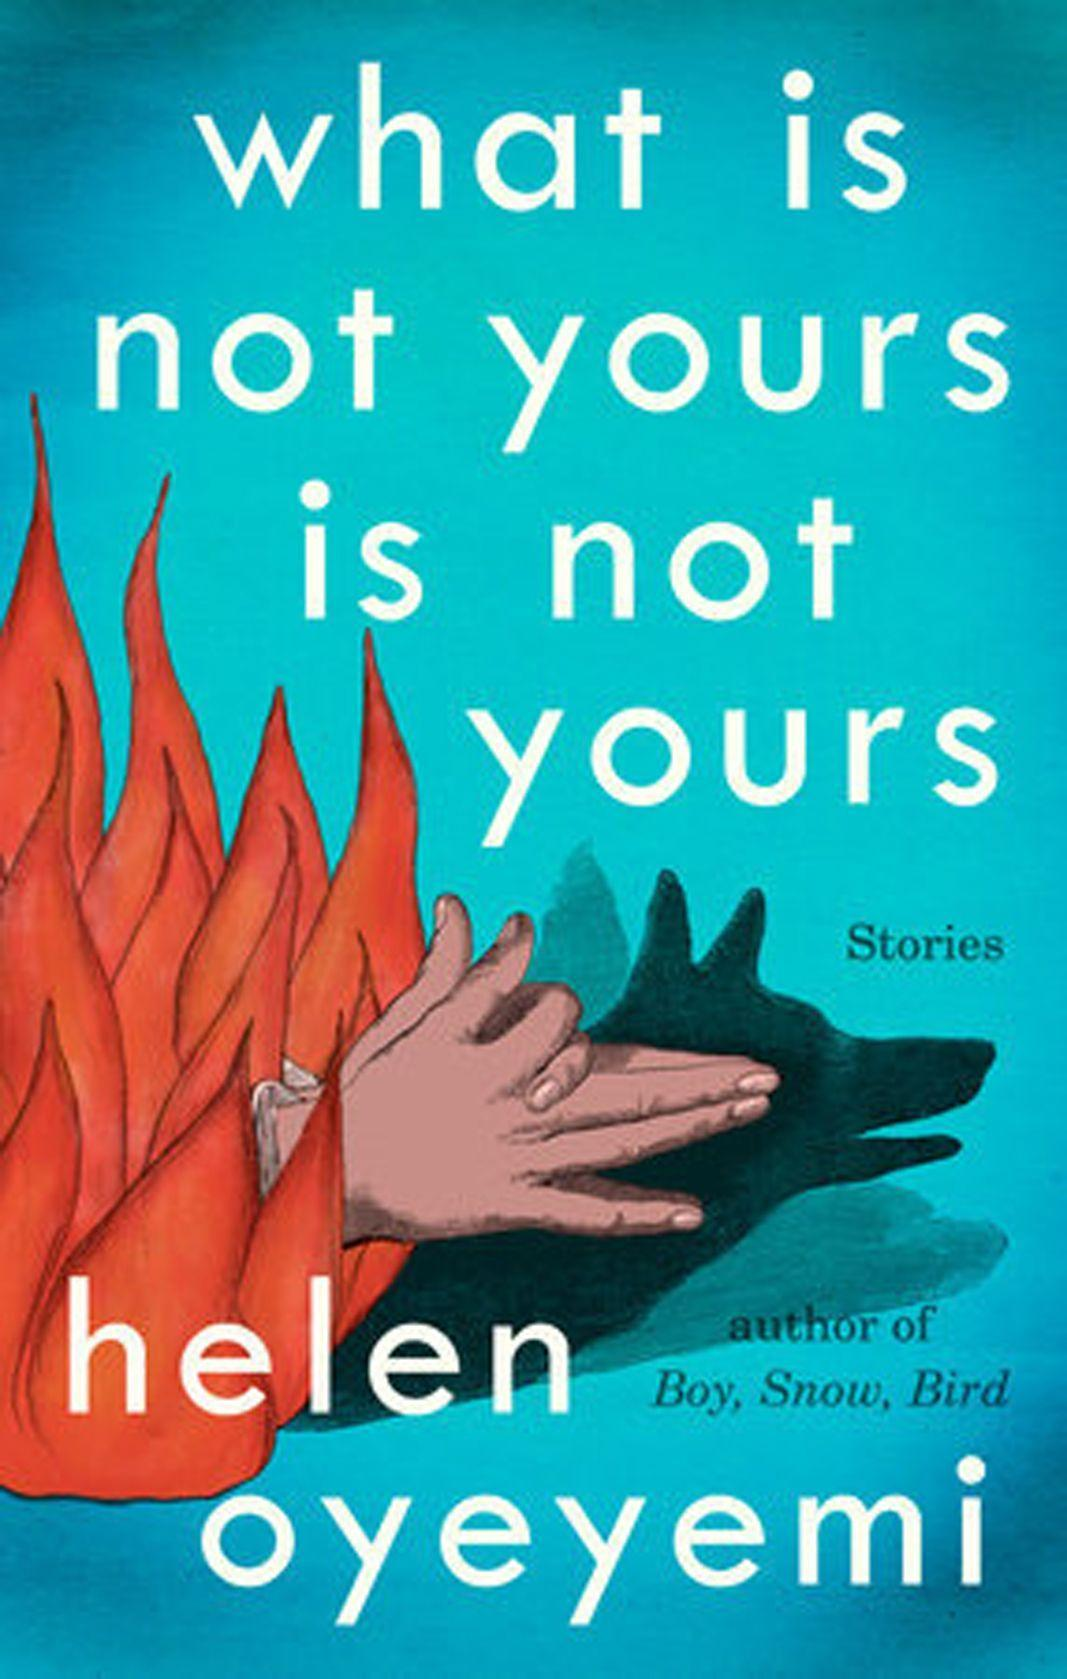 <p><strong><em>What Is Not Yours Is Not Yours</em></strong></p> <p>By Helen Oyeyemi</p> <p>This collection of short stories is a treat for the senses. Oyeyemi's tales stretch over multiple times and landscapes and tease the boundaries between coexisting realities. Hone your imagination and lose yourself in a beautiful, sensuous world of lost libraries and locked gardens, of marshlands where the drowned dead live and a city where all the clocks have stopped. A perfect book for when you need to escape.</p>